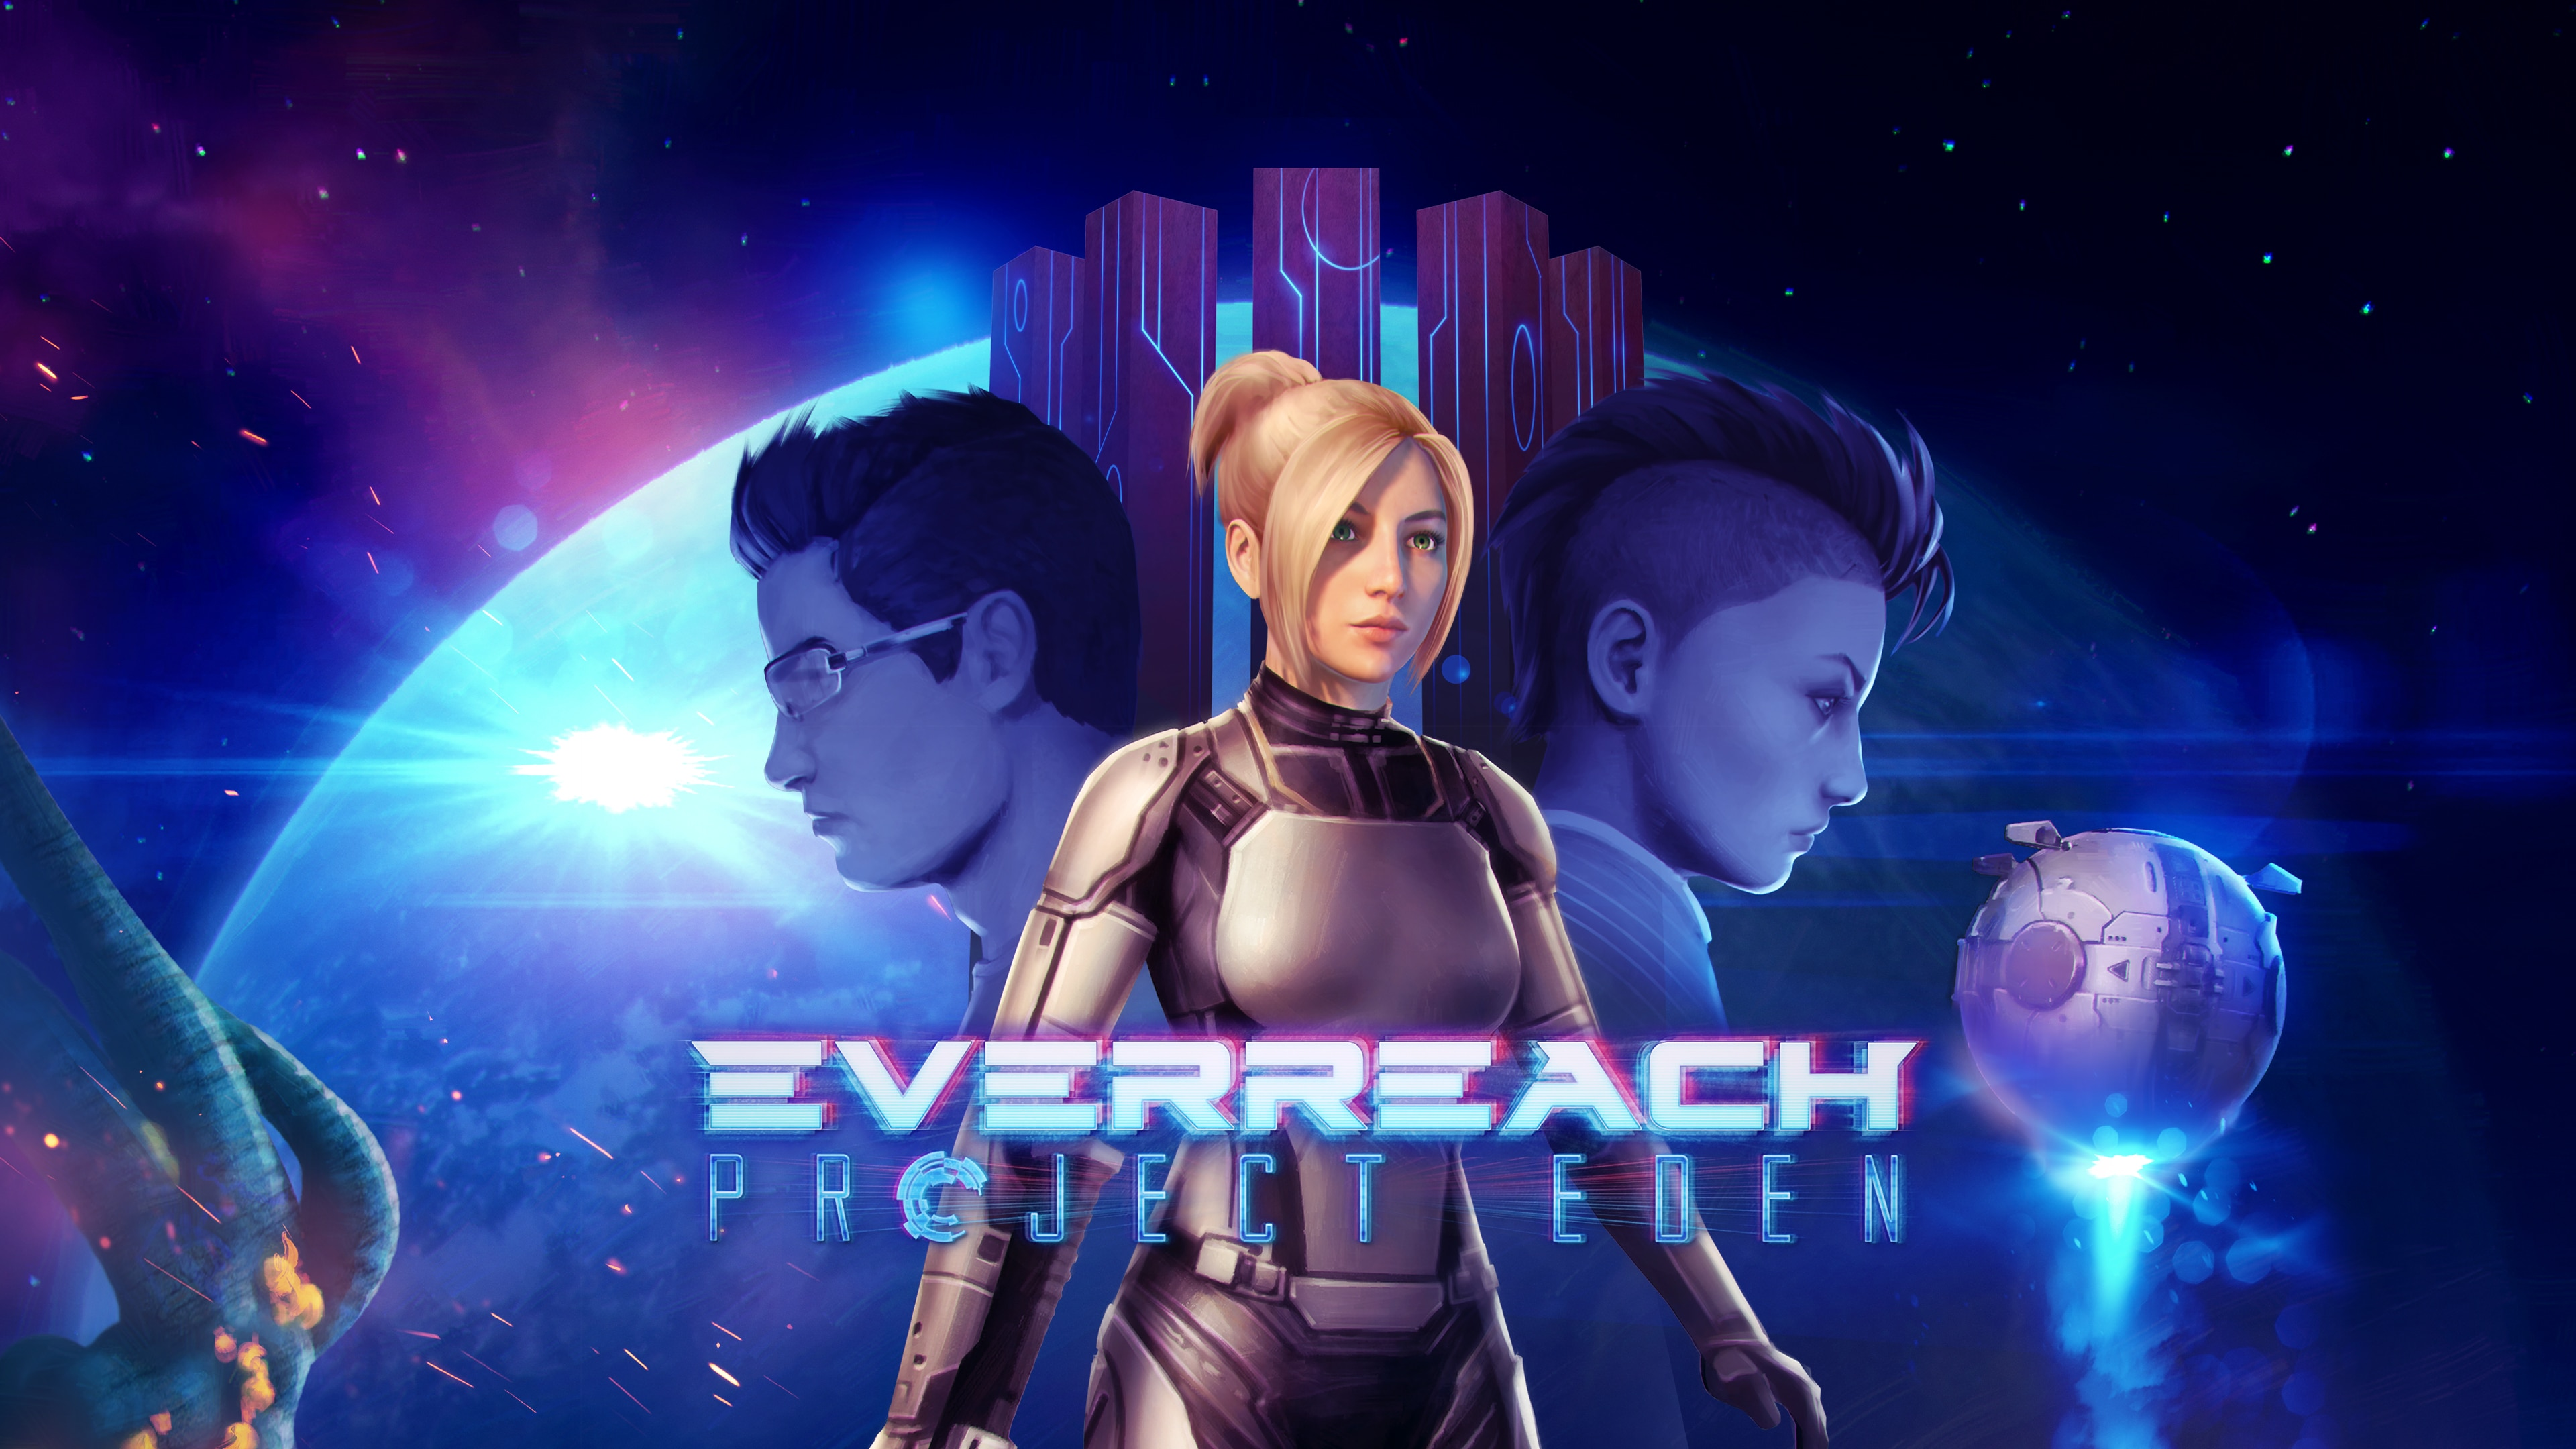 Everreach: Project Eden (エバーリーチ: プロジェクト・エデン)